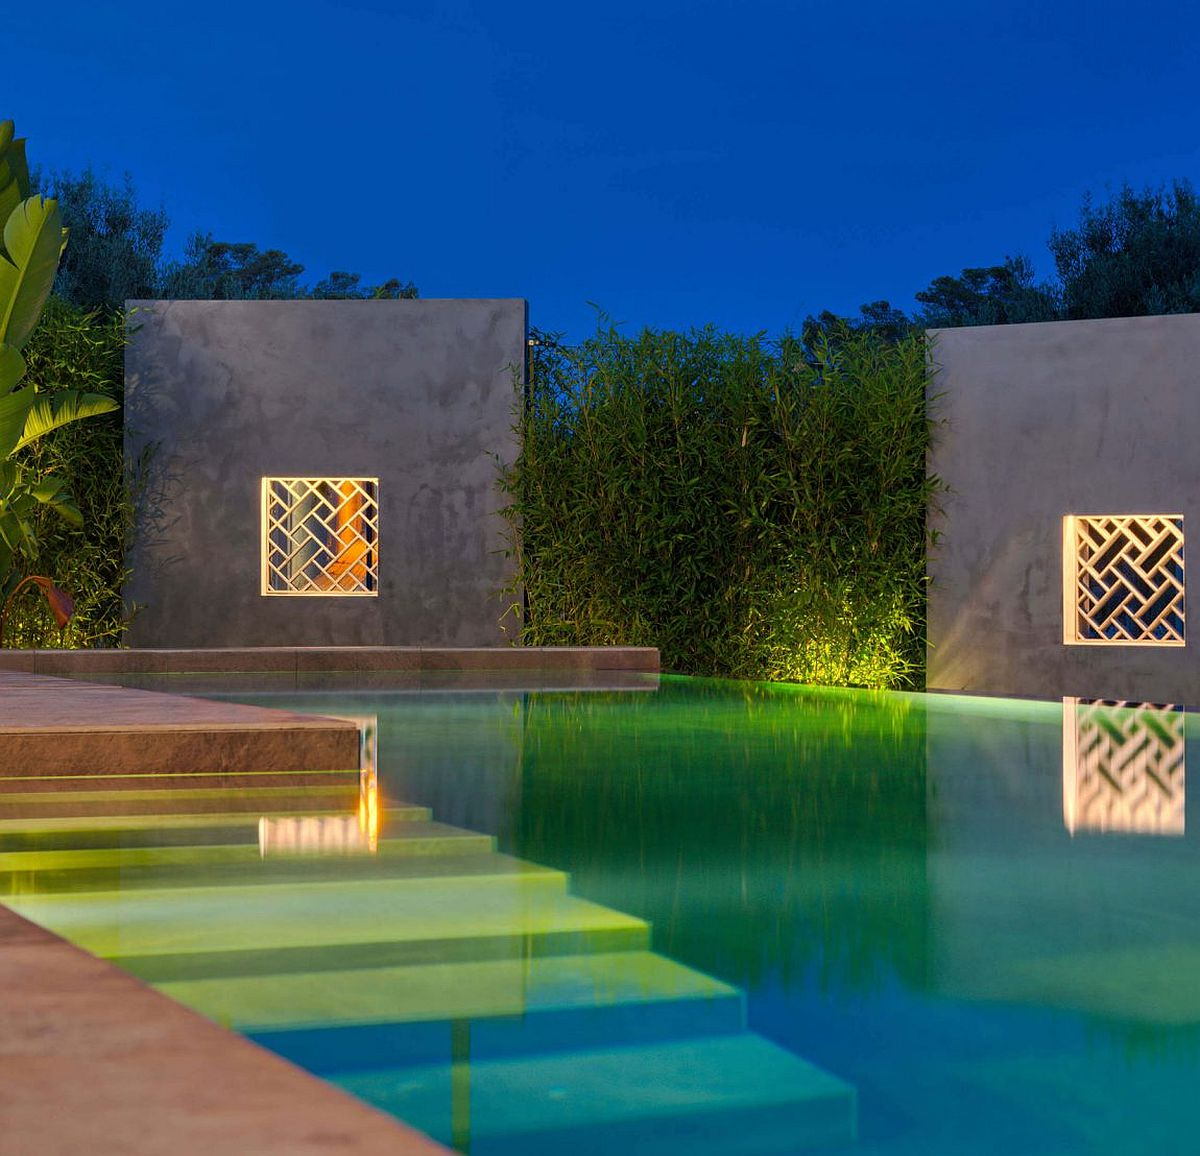 Lighting brings dramatic flair to the pool area of the Spanish home